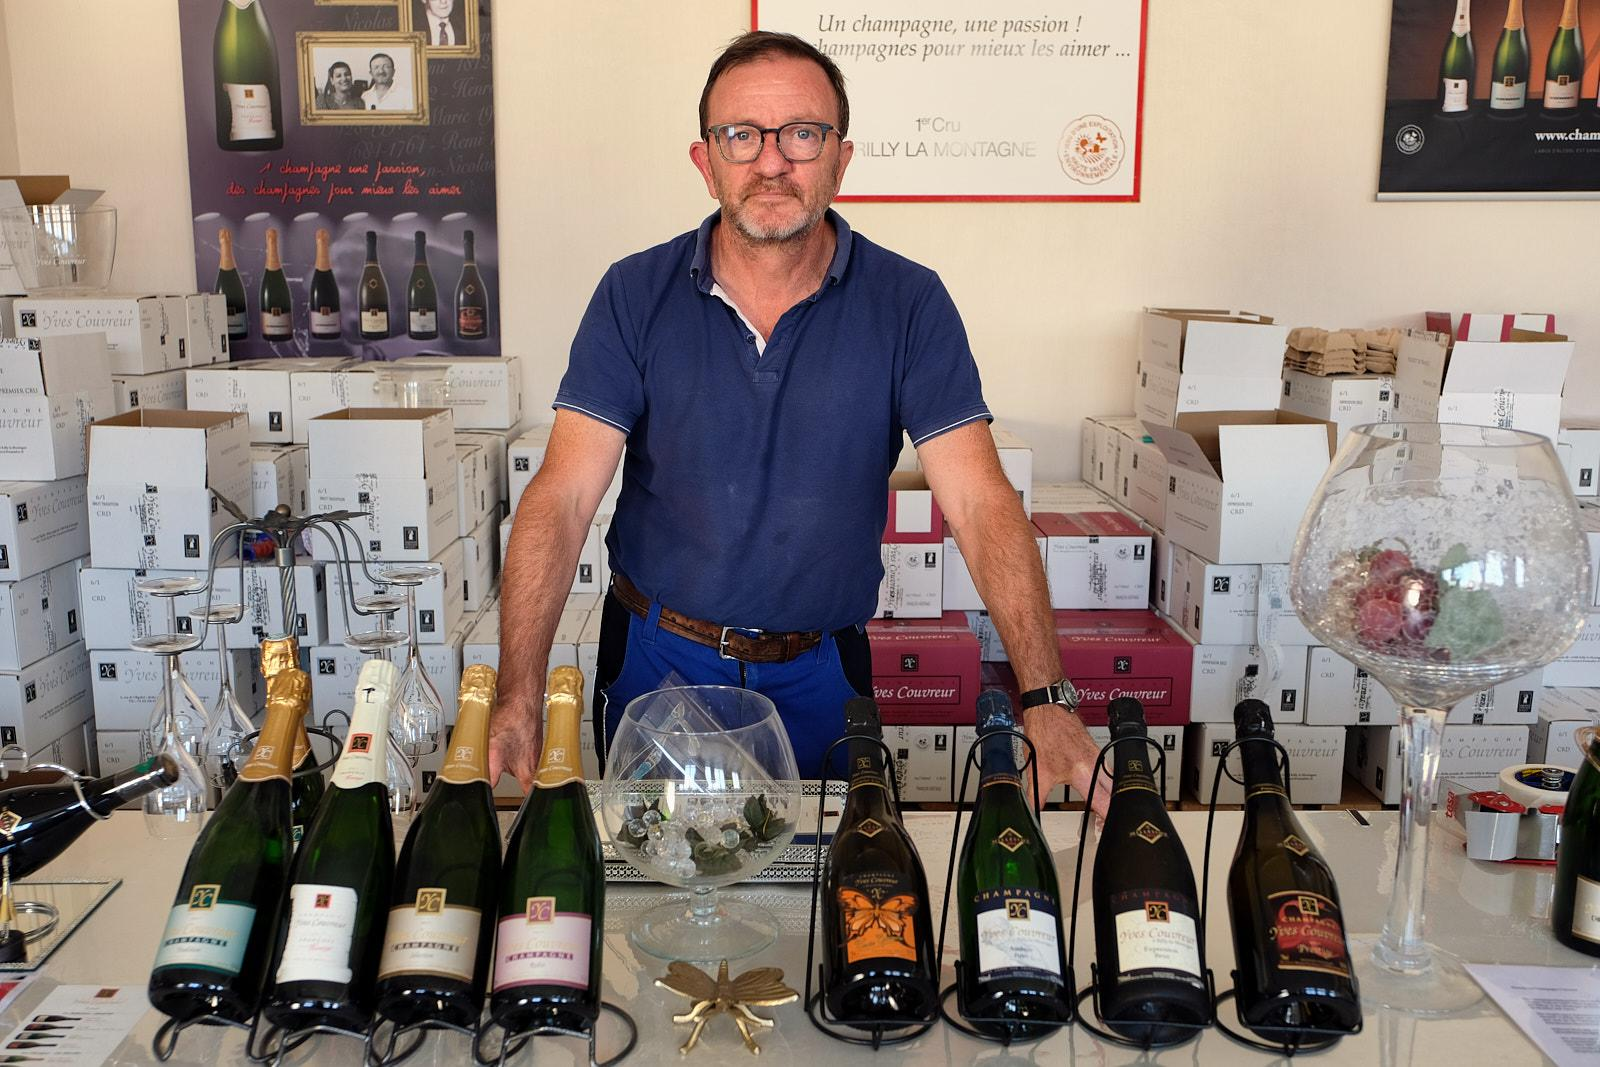 Yves Couvreur, 8th generation winemaker with a family history going  back to 1644 in his shop, annex production space, in Rilly la Montagne.